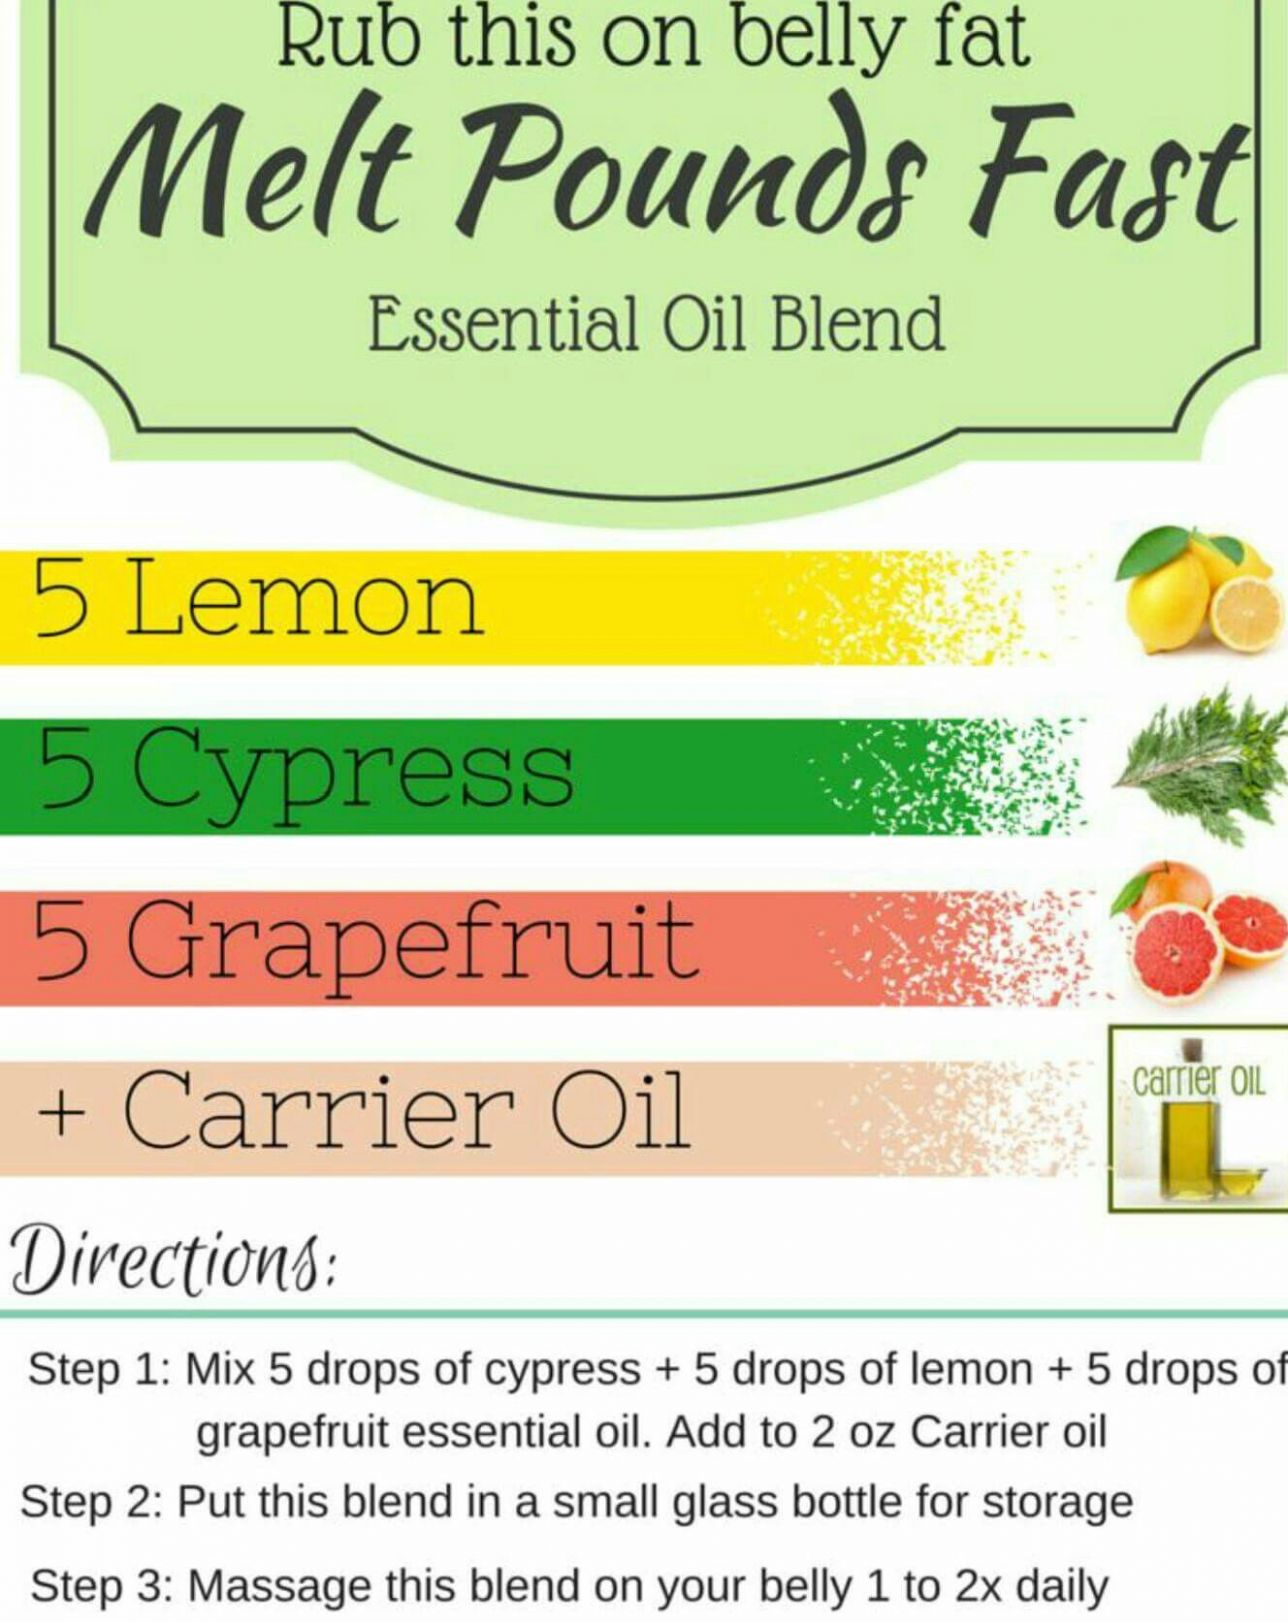 Pin on Essential Oil Recipes - Rollerball Recipes For Weight Loss